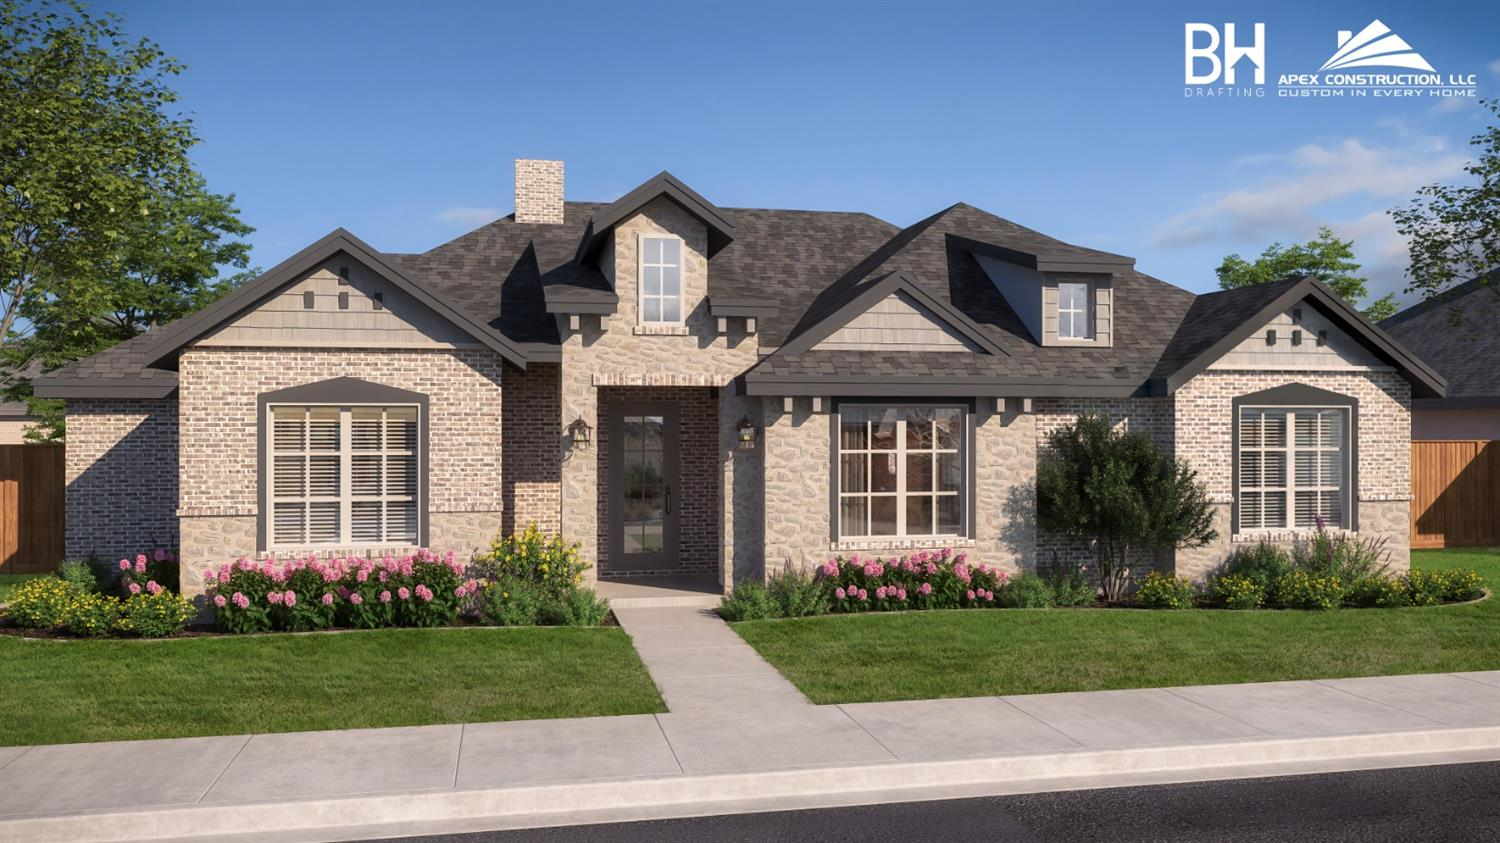 Another stunning home Built by Apex Construction. This home features 4 spacious bedrooms, 3 bathrooms and an attached 2 car garage. Vaulted ceiling in the master bedroom. Dining area located off kitchen. Open concept home with brick and stone on the front elevation. You won't want to miss  this beauty!